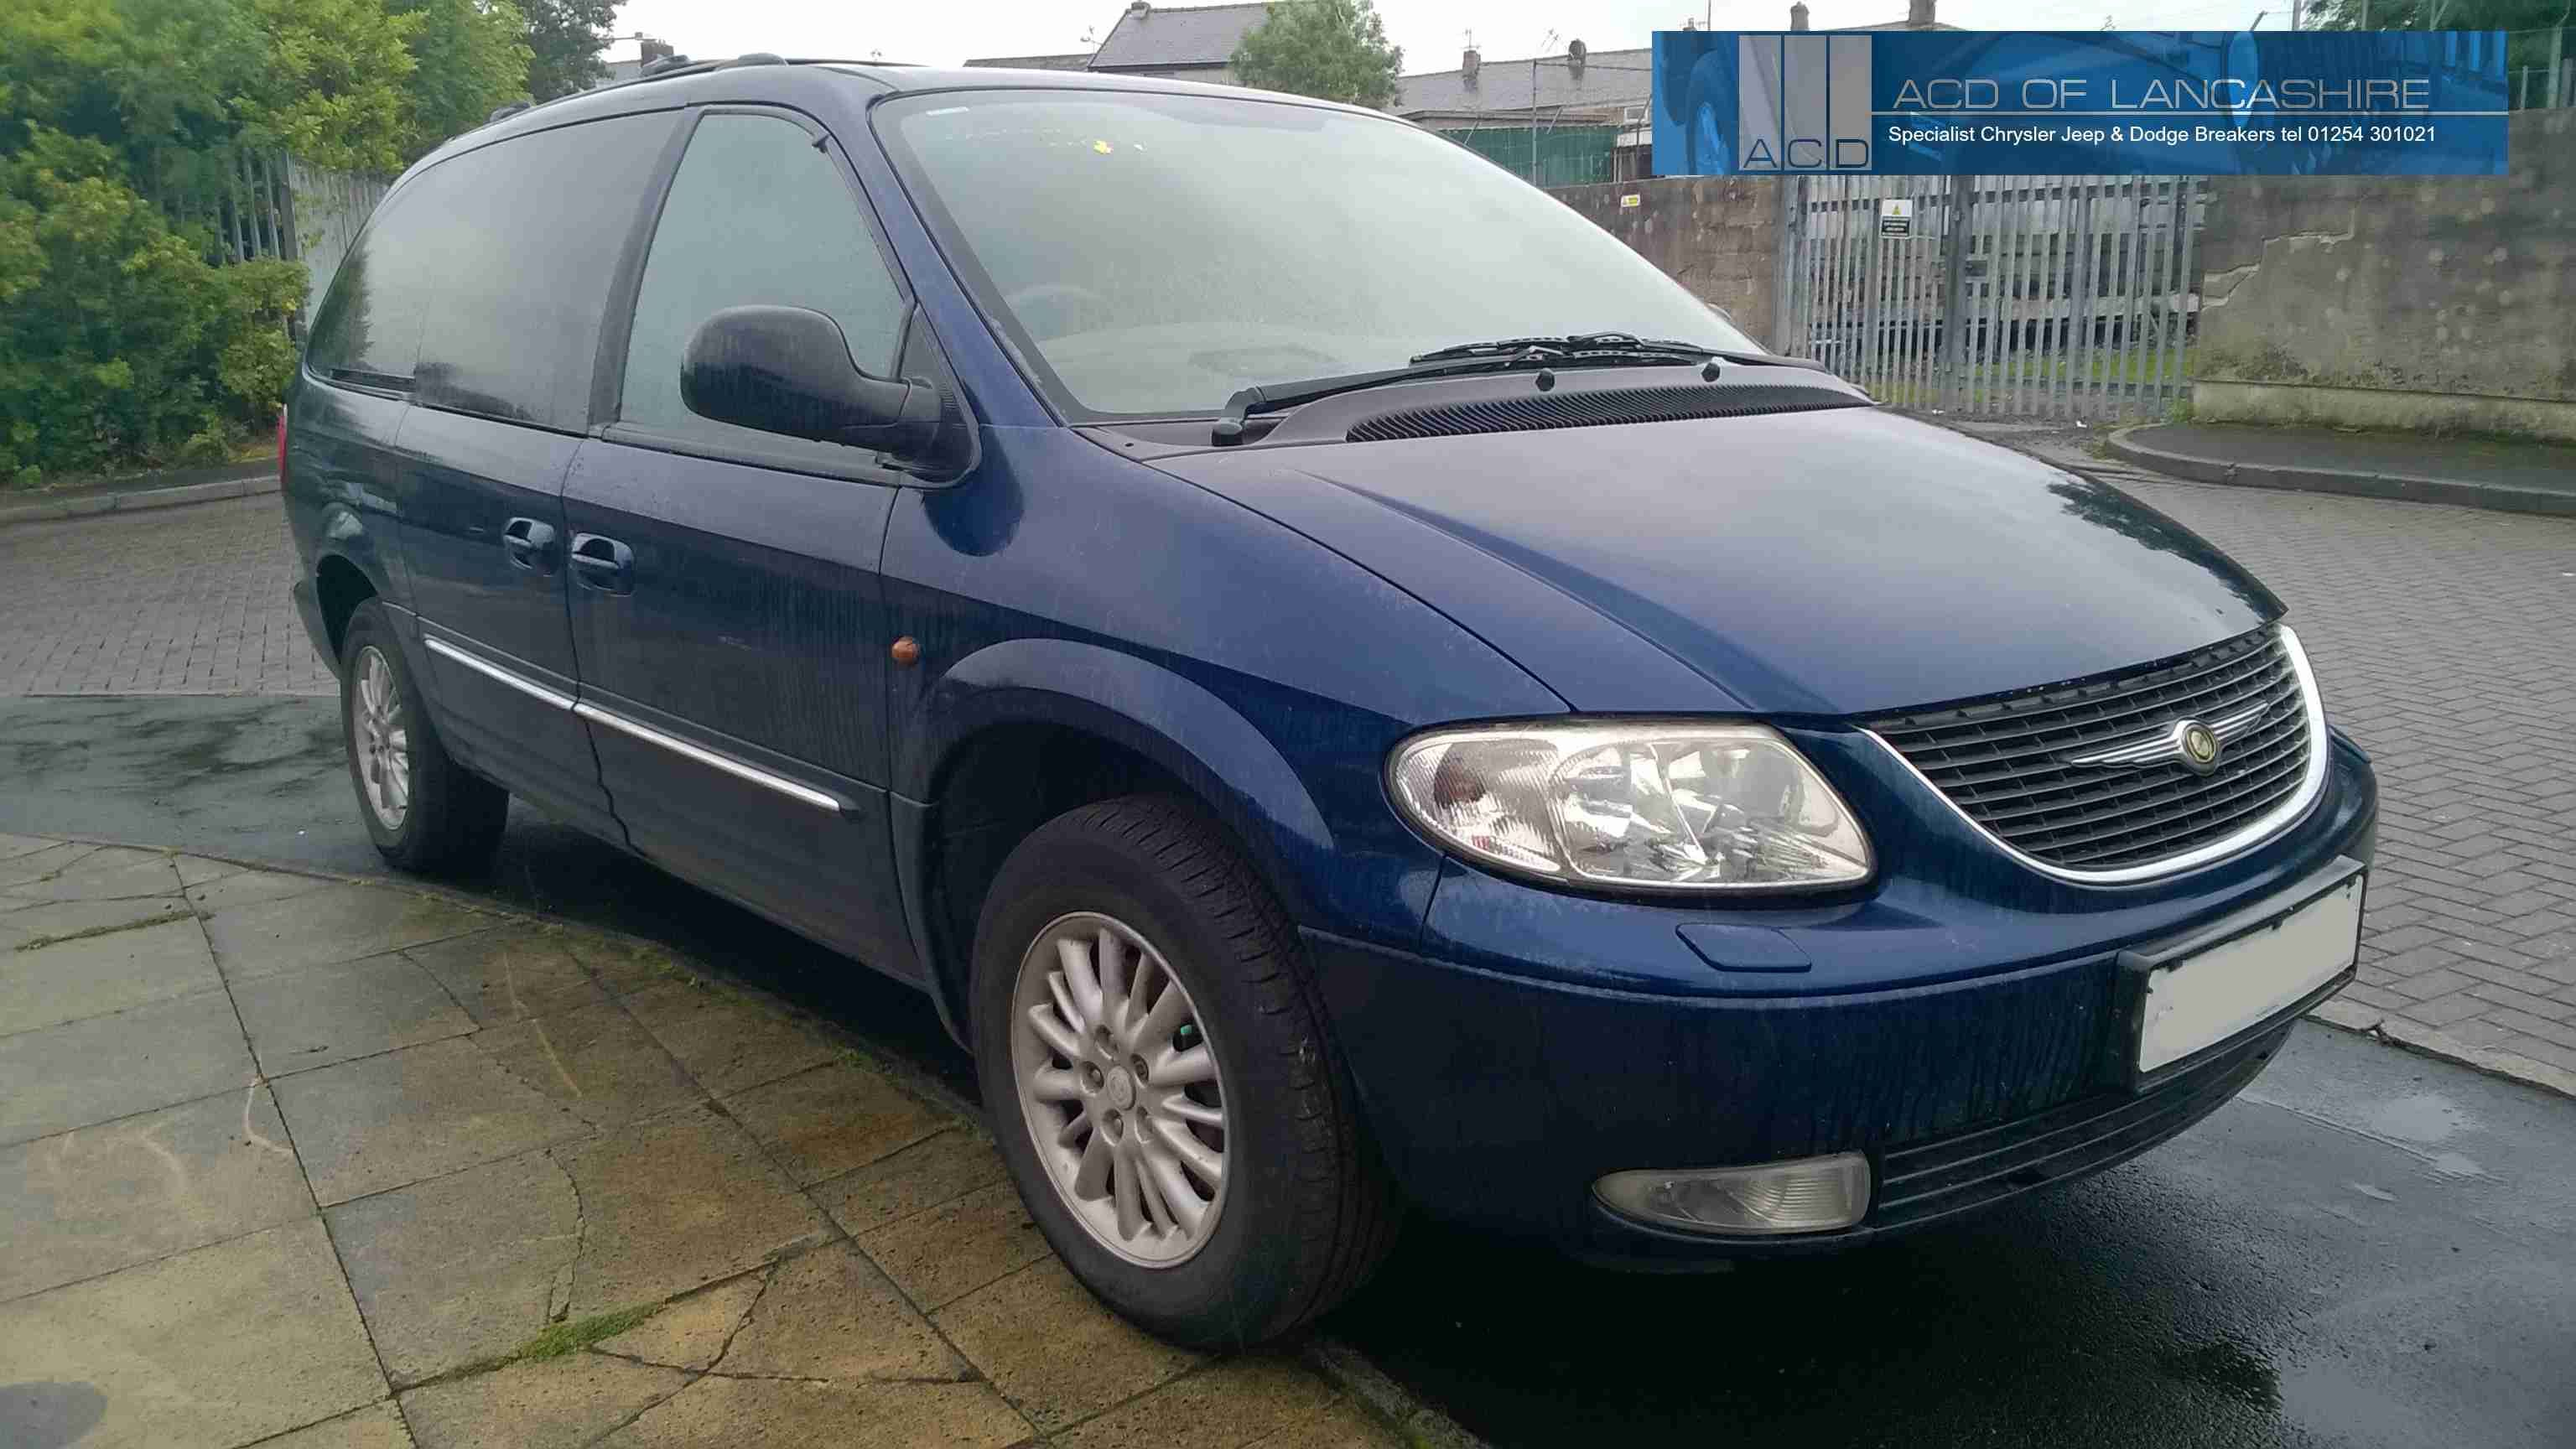 Chrysler Grand Voyager 2.5 Diesel 5 speed manual 2003.